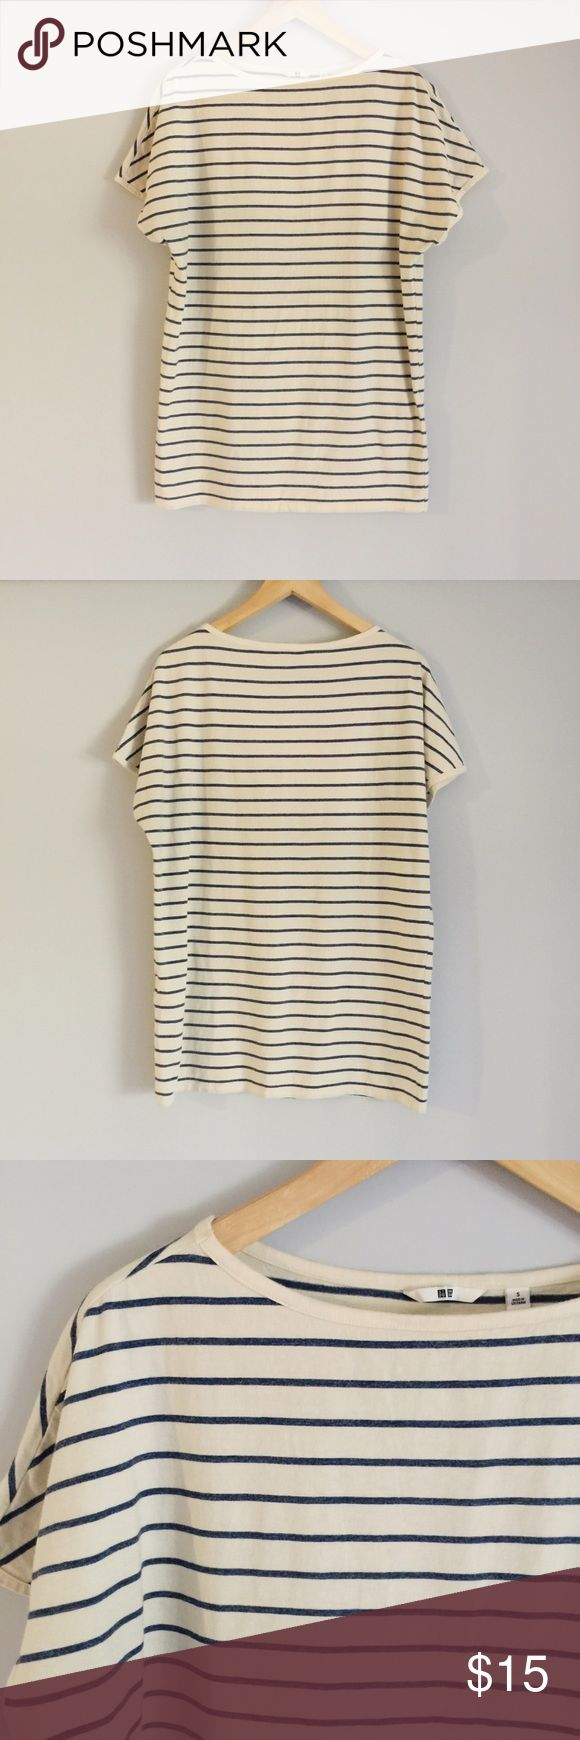 UNIQLO | Stripe Oversized T-shirt Worn less than 3 times, in great condition ✨  Make me an offer 🤗 Uniqlo Tops Tees - Short Sleeve